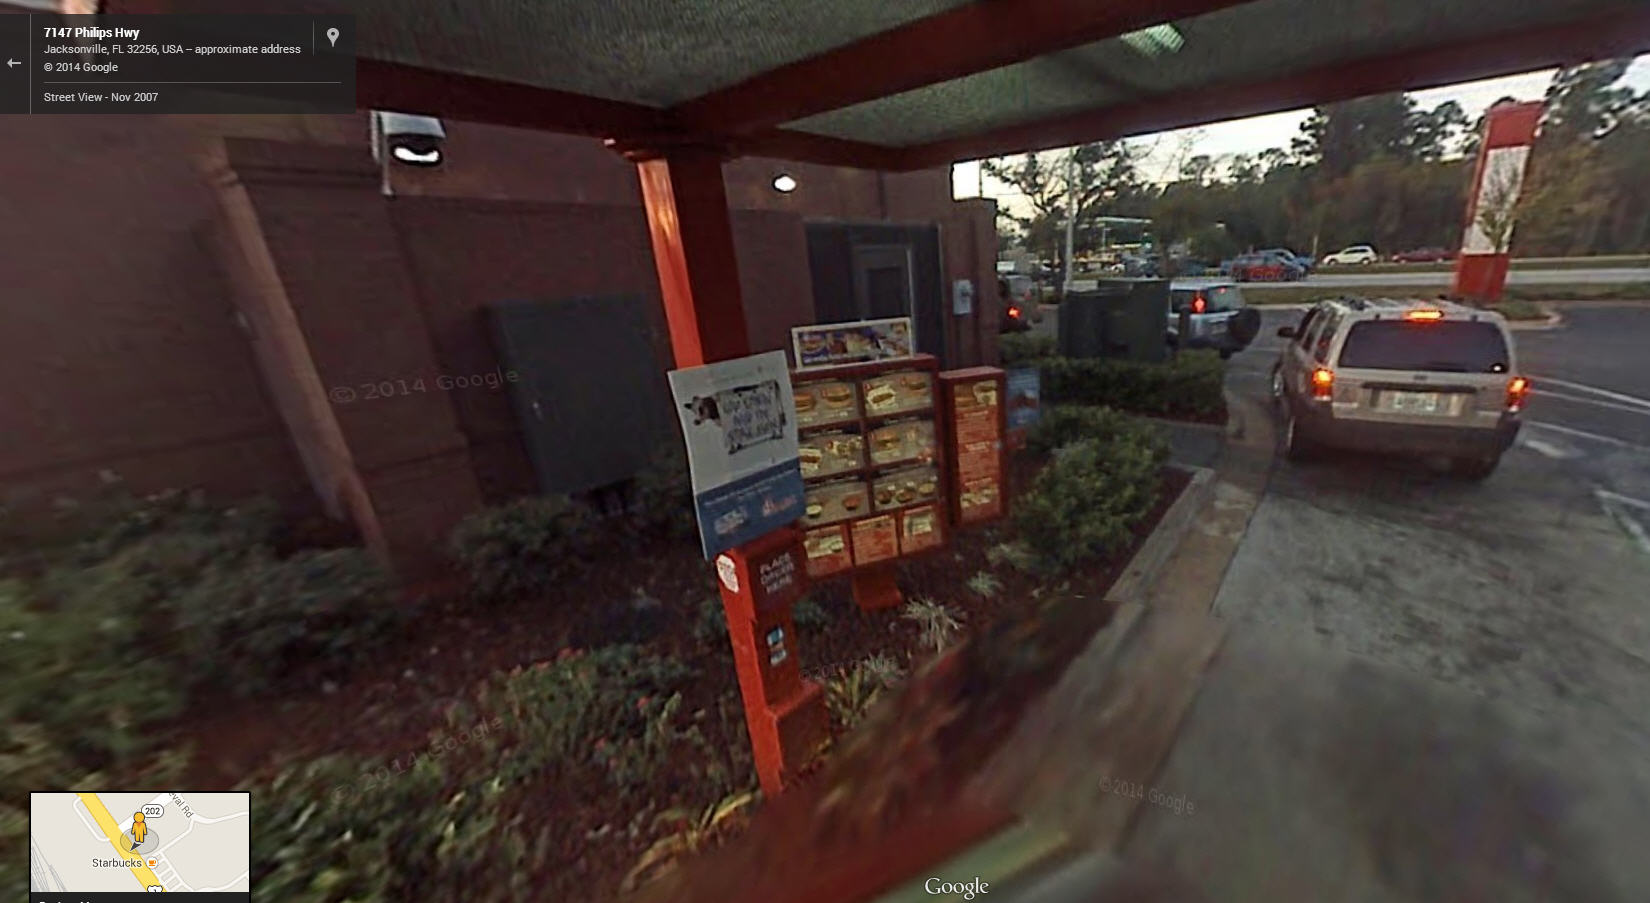 Google Street View Captures the Chick Fil A drive thru experience…